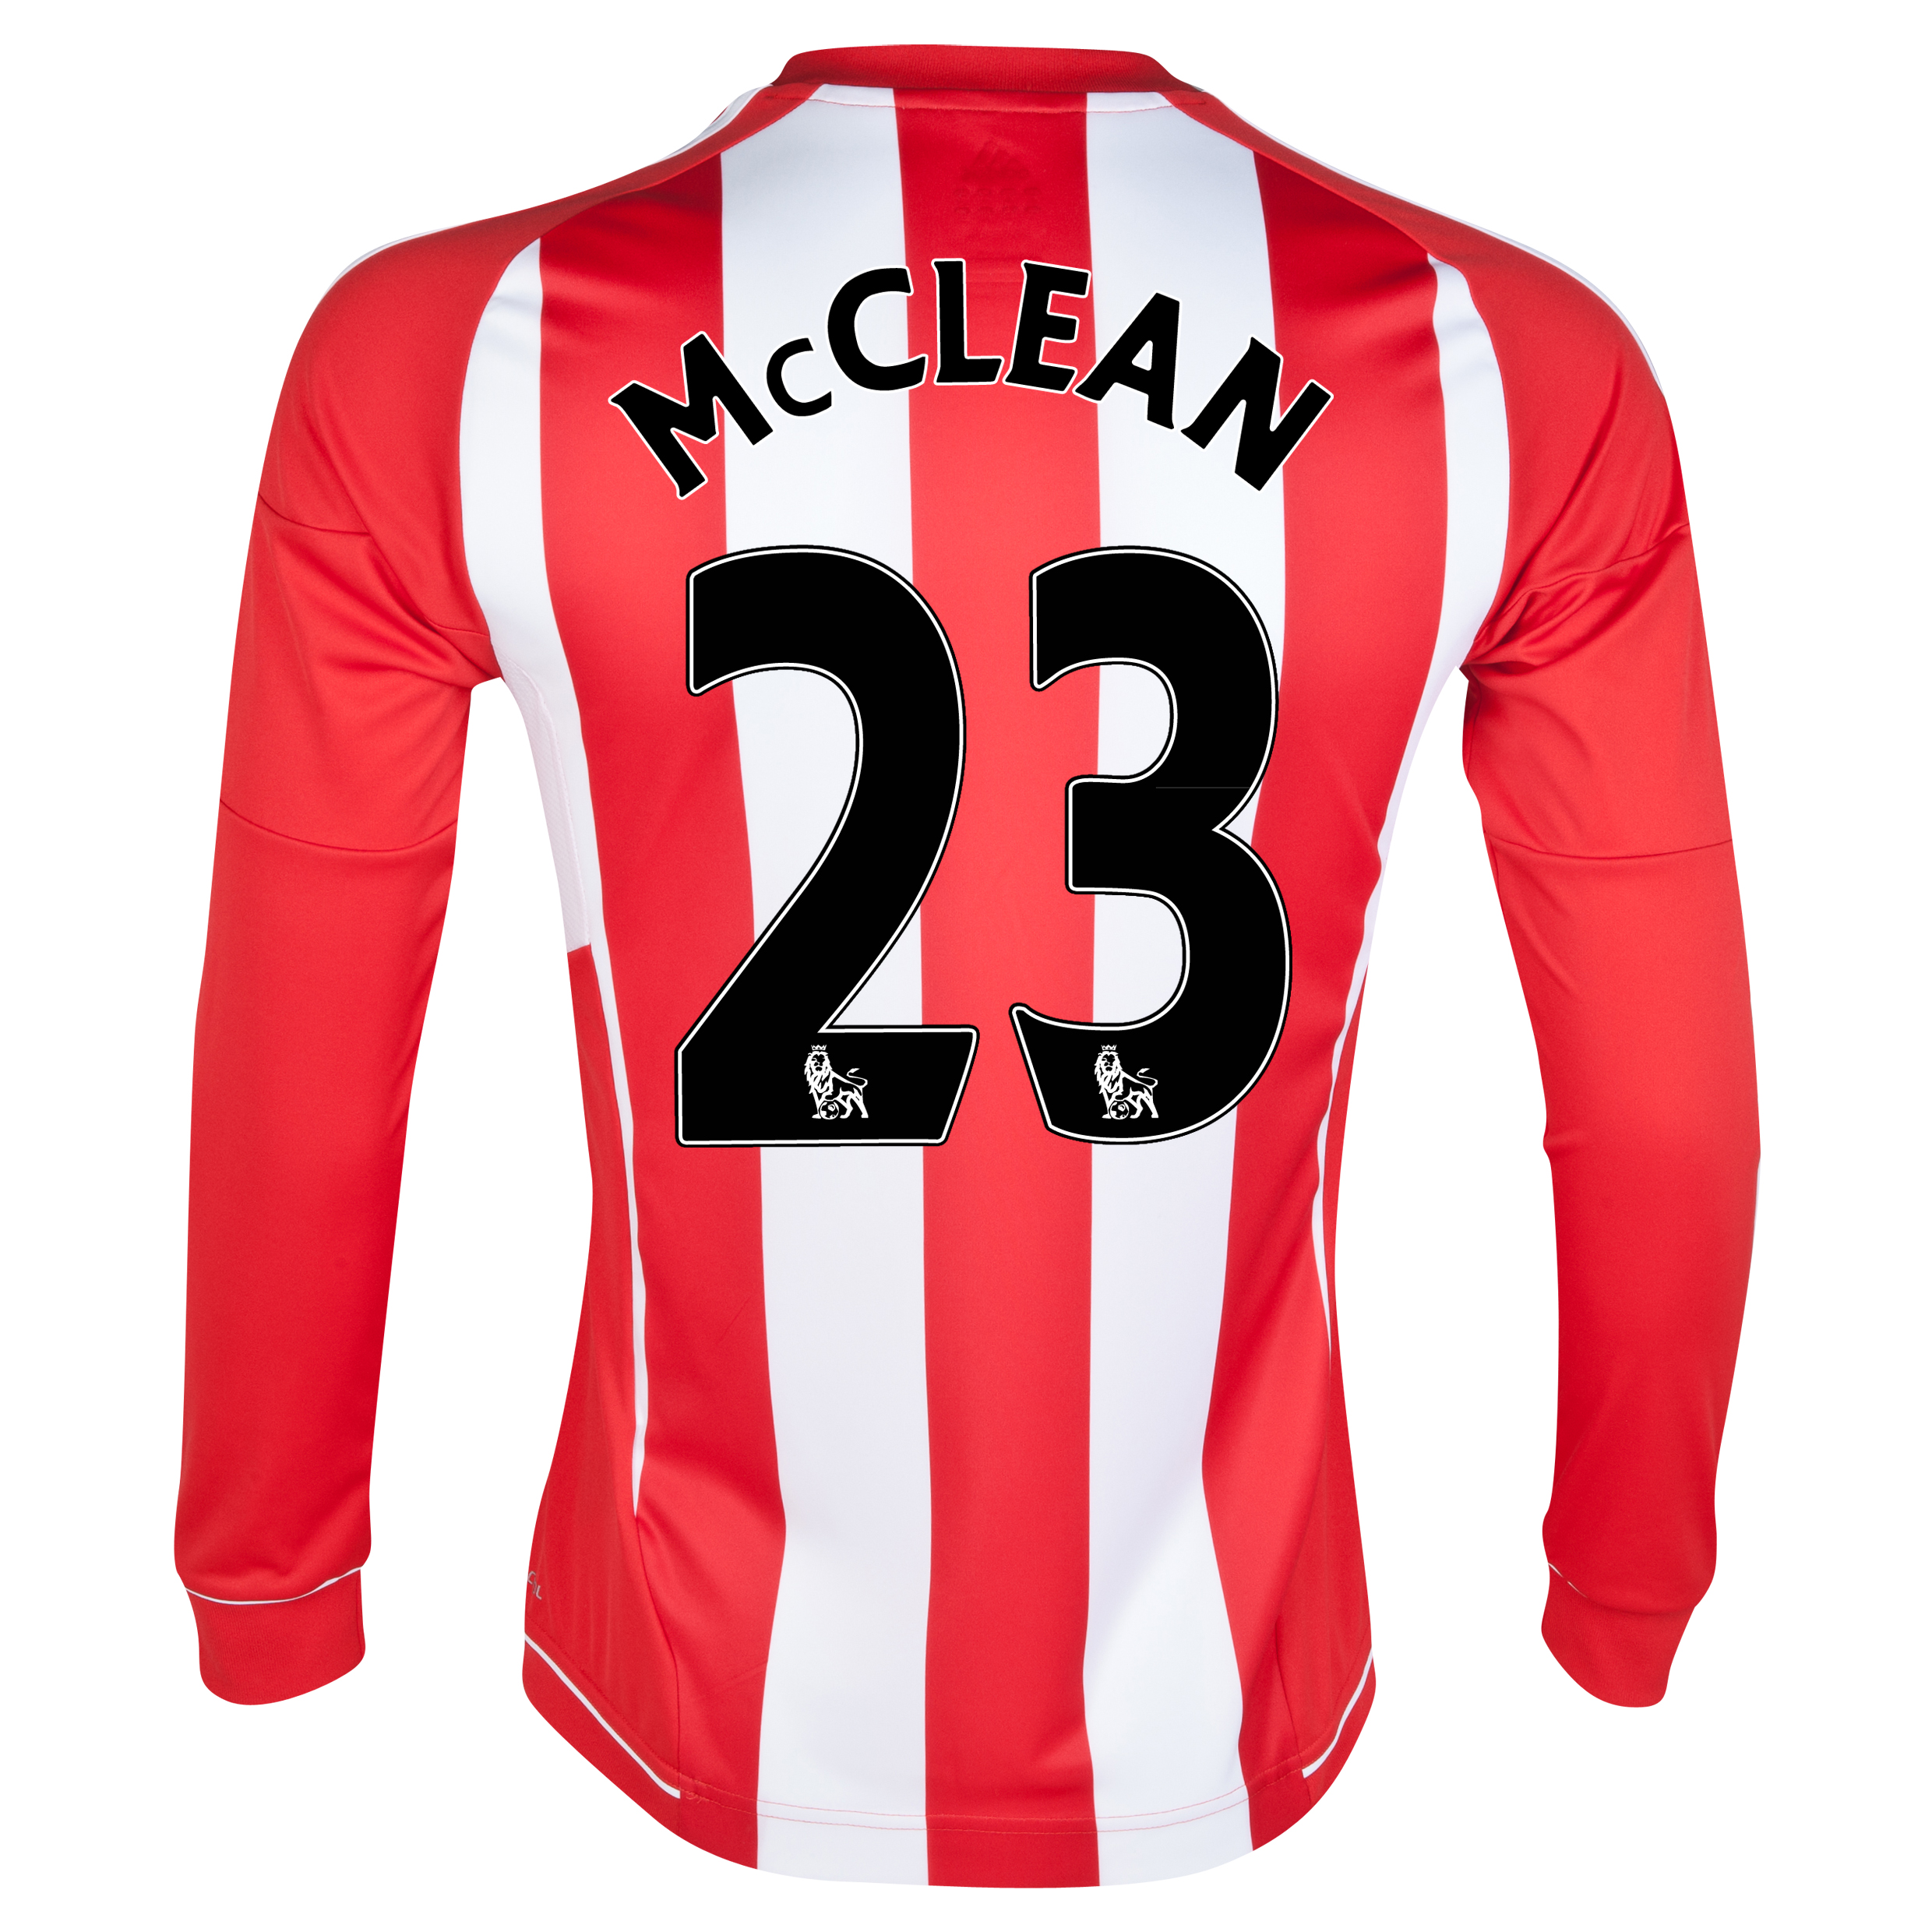 Sunderland Home Shirt 2012/13 - Long Sleeved - Junior with McClean 23 printing